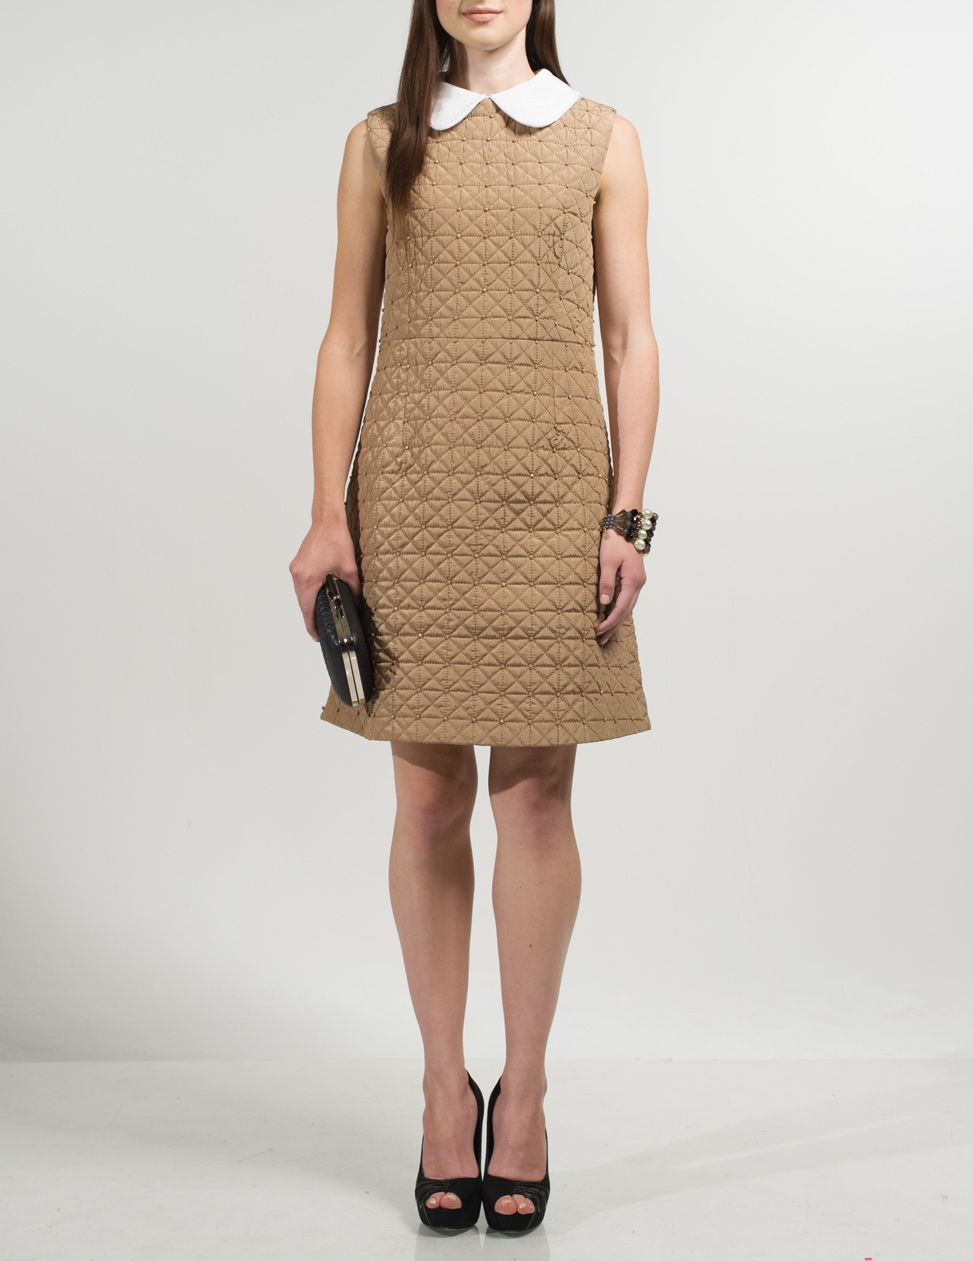 Deyba quilted dress